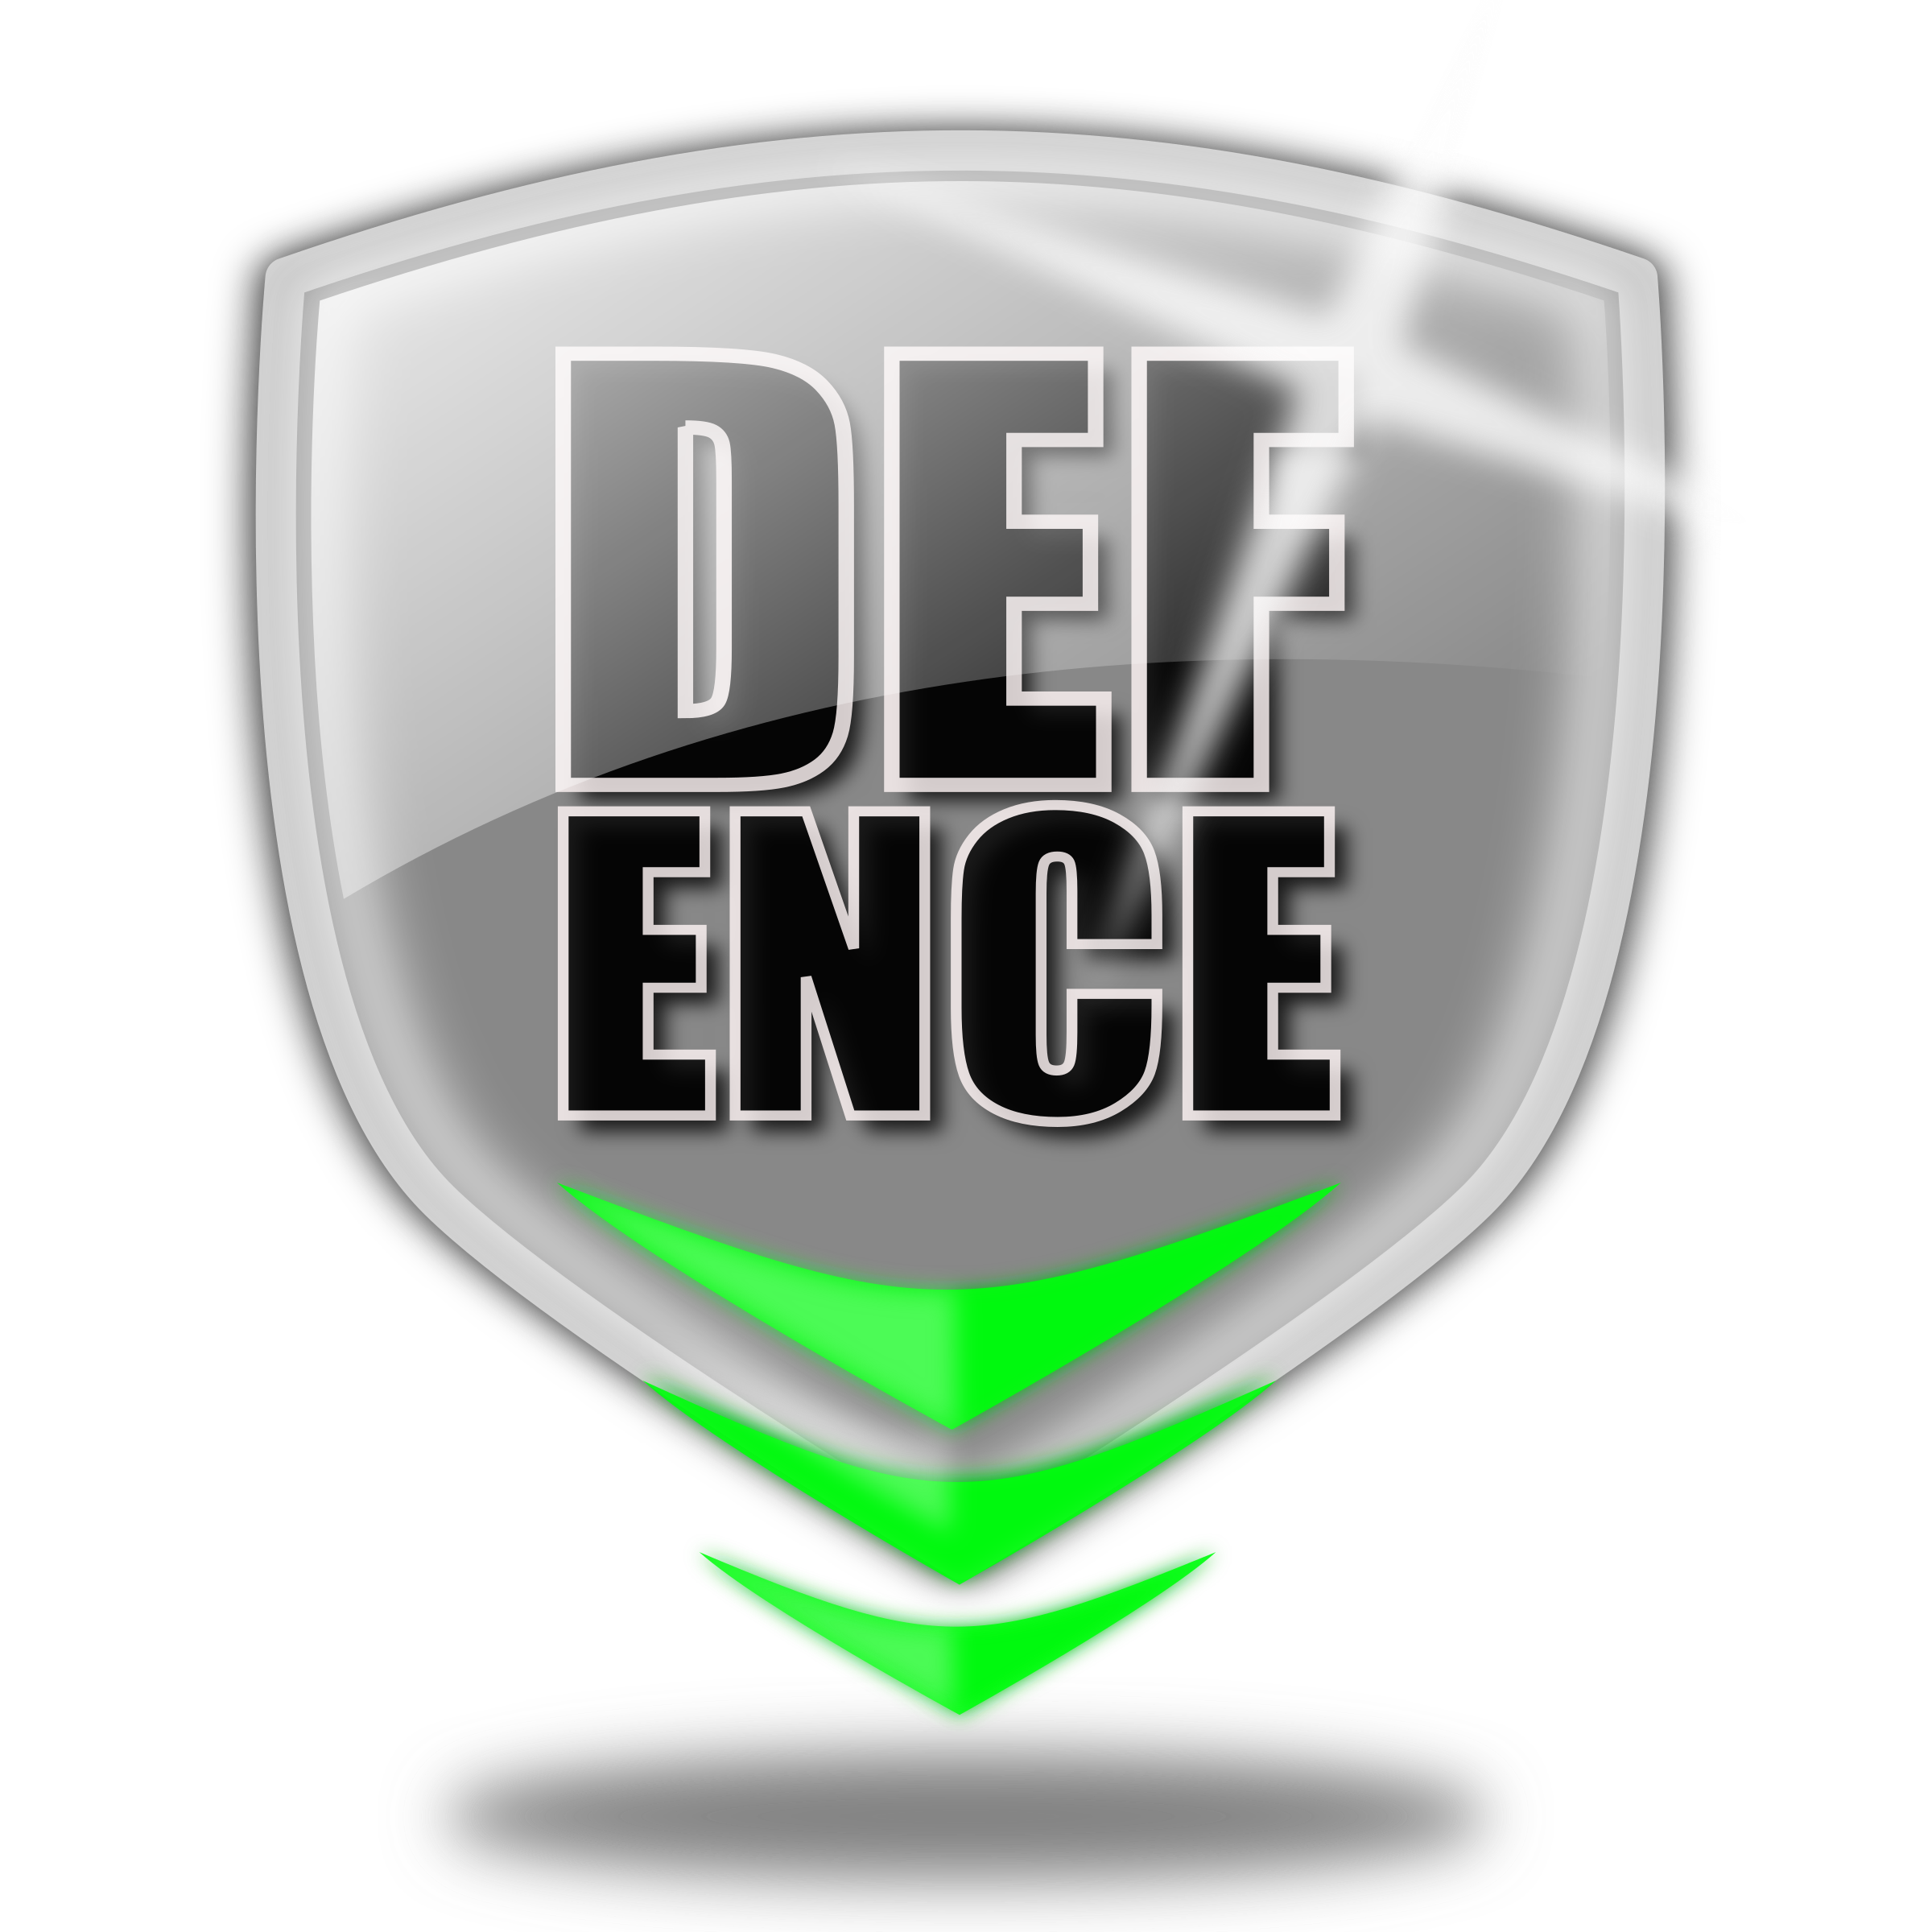 Defence logo shield by lekamie